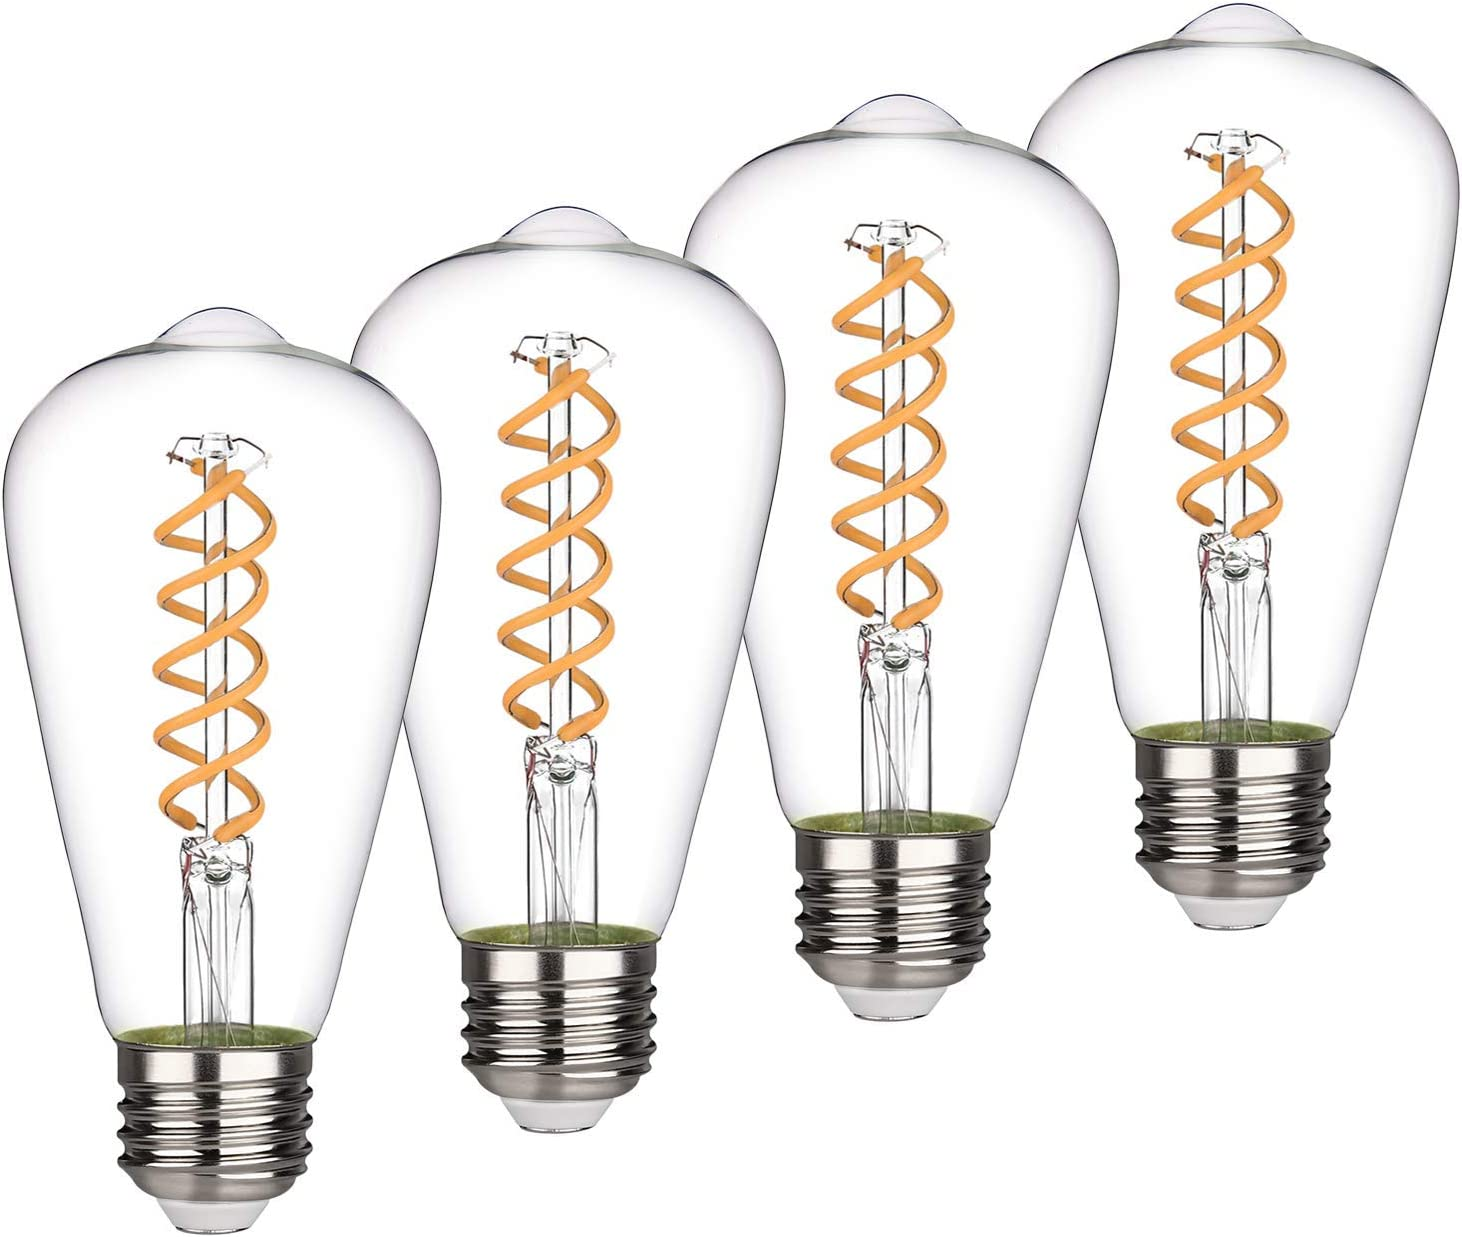 ST19(ST64) 8W Vintage Edison LED Bulb, Soft White 2700K, Antique Flexible Spiral LED Filament Light Bulb,800Lm Dimmable, 8W Equivalent to 80W, E26 Base,Clear Glass (8W-2700K-4 Pack)